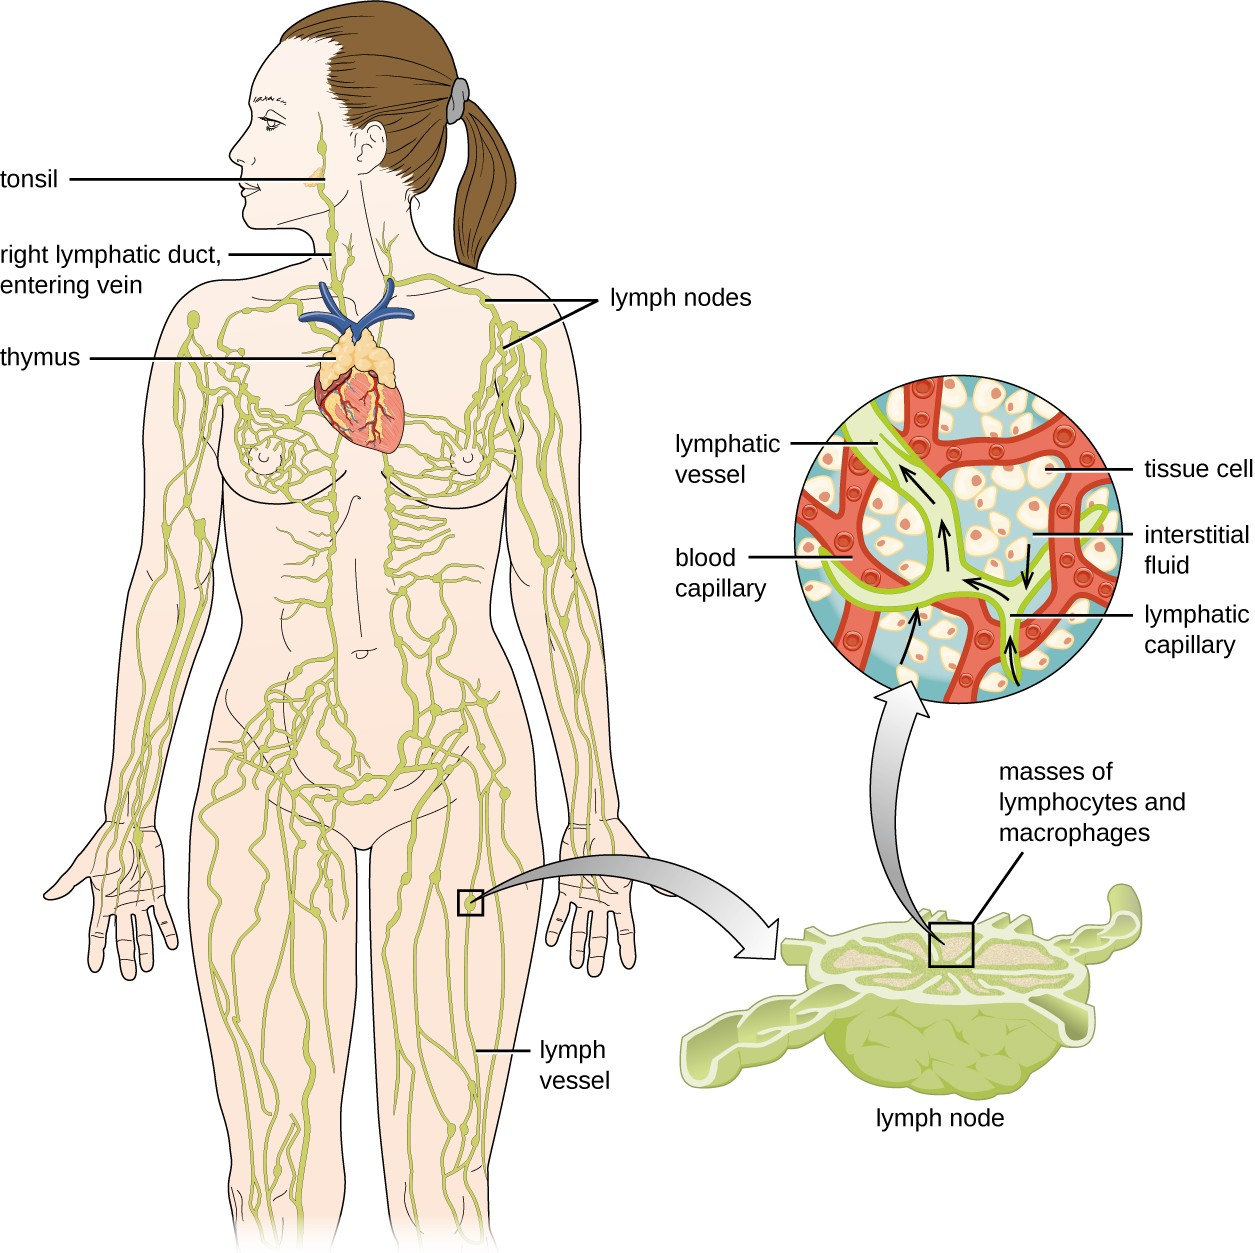 The essential components of the human lymphatic system drain fluid away from tissues.